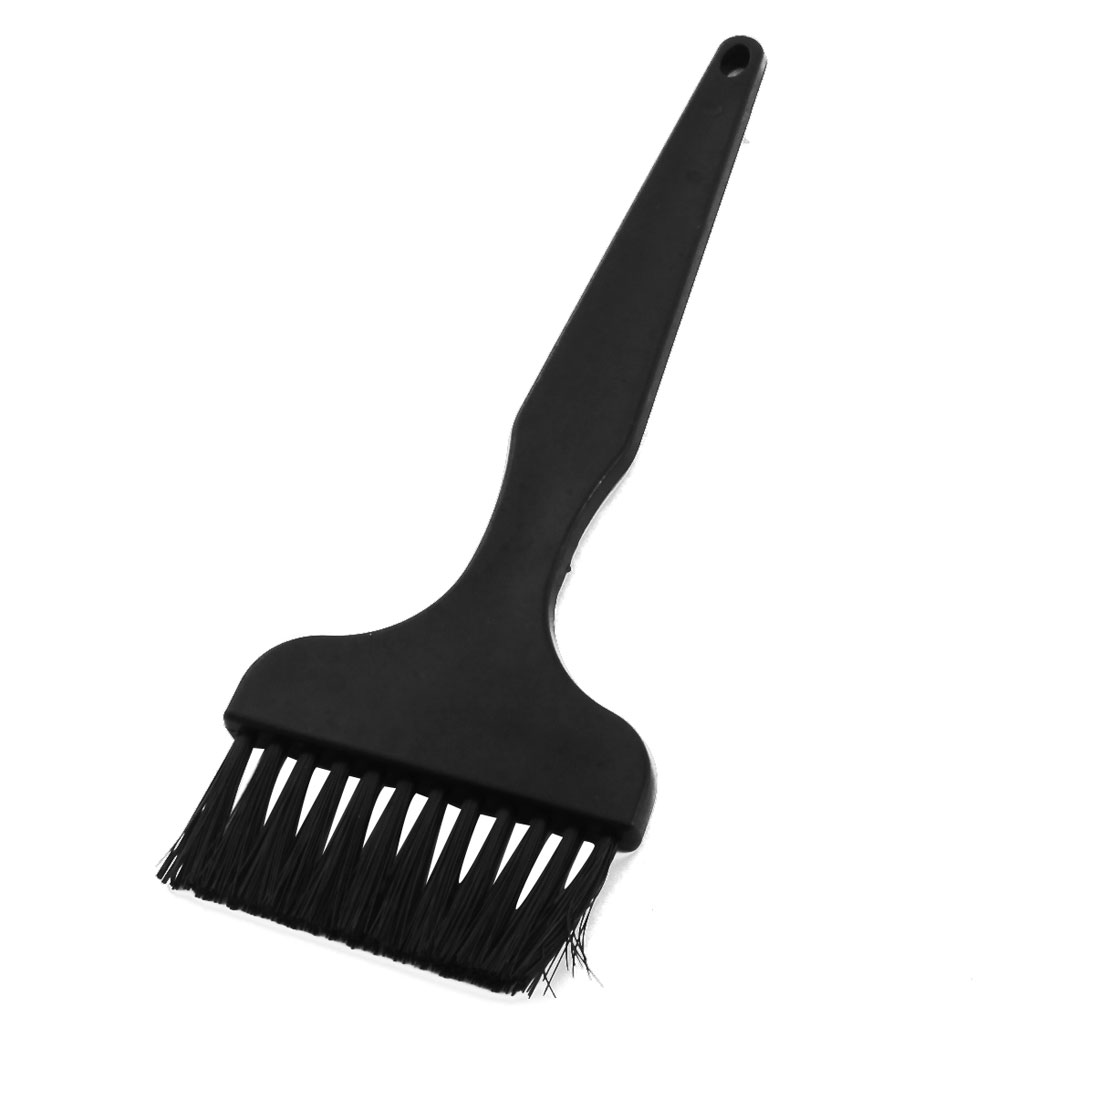 PCB Motherboards Rework Dust Cleaning Tool Black Straight Plastic Handle ESD Protection Anti-static Brush Comb